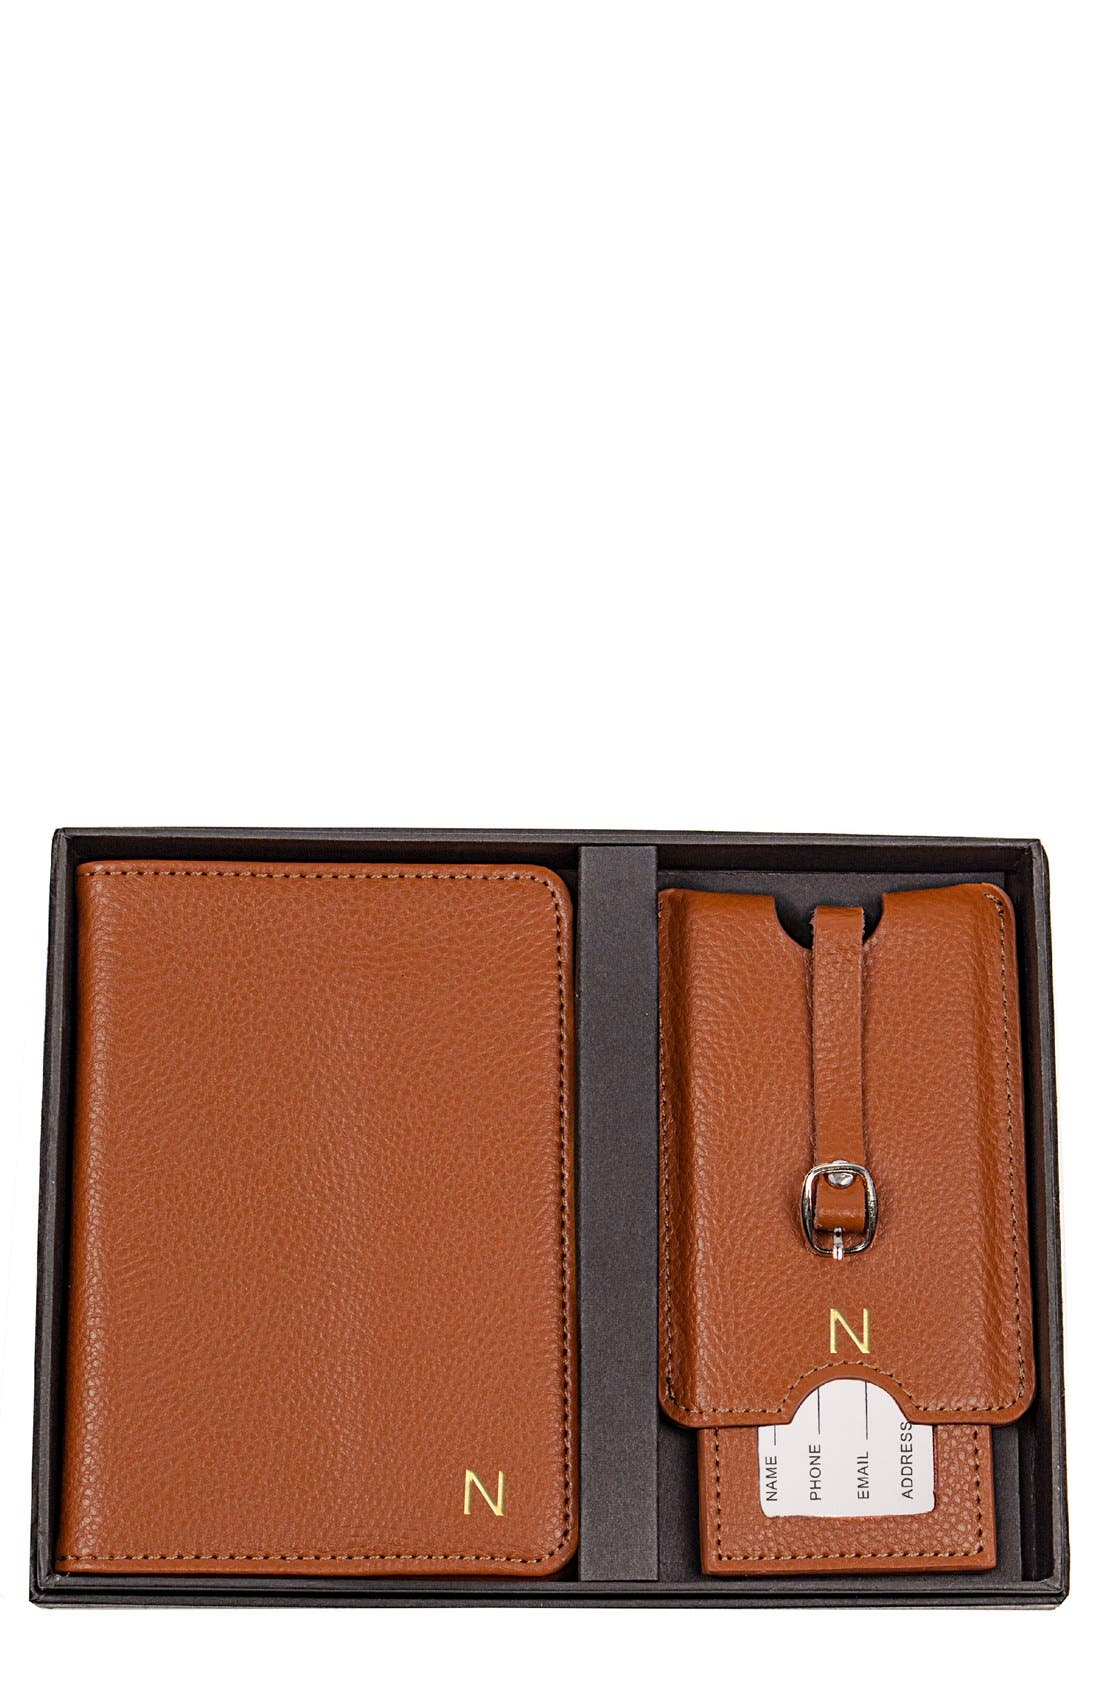 Main Image - Cathy's Concepts Monogram Passport Case & Luggage Tag